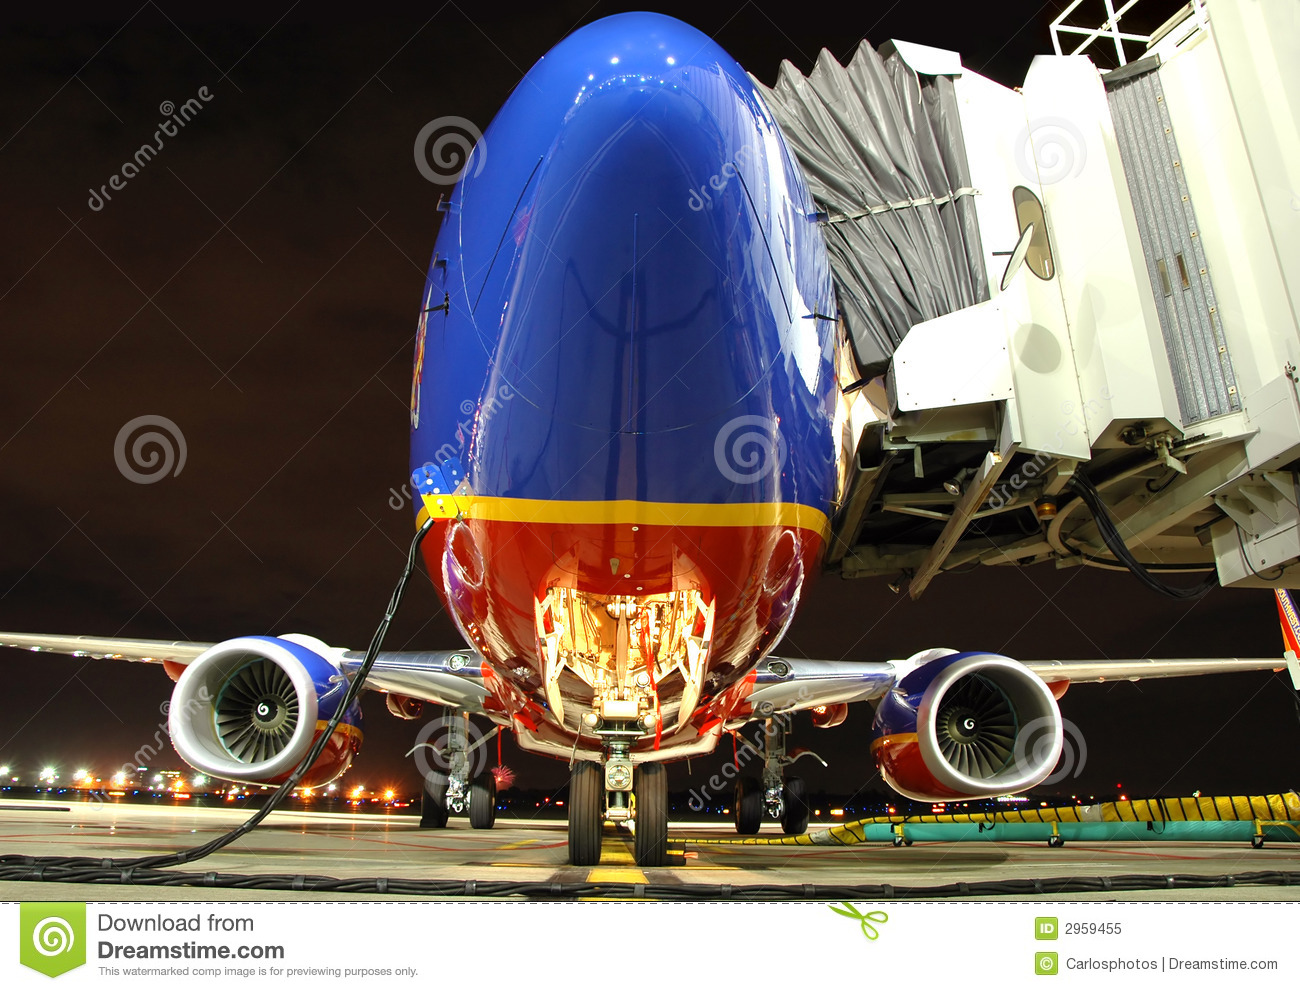 Southwest airlines plane at th stock image image of wheel southwest airlines plane at th buycottarizona